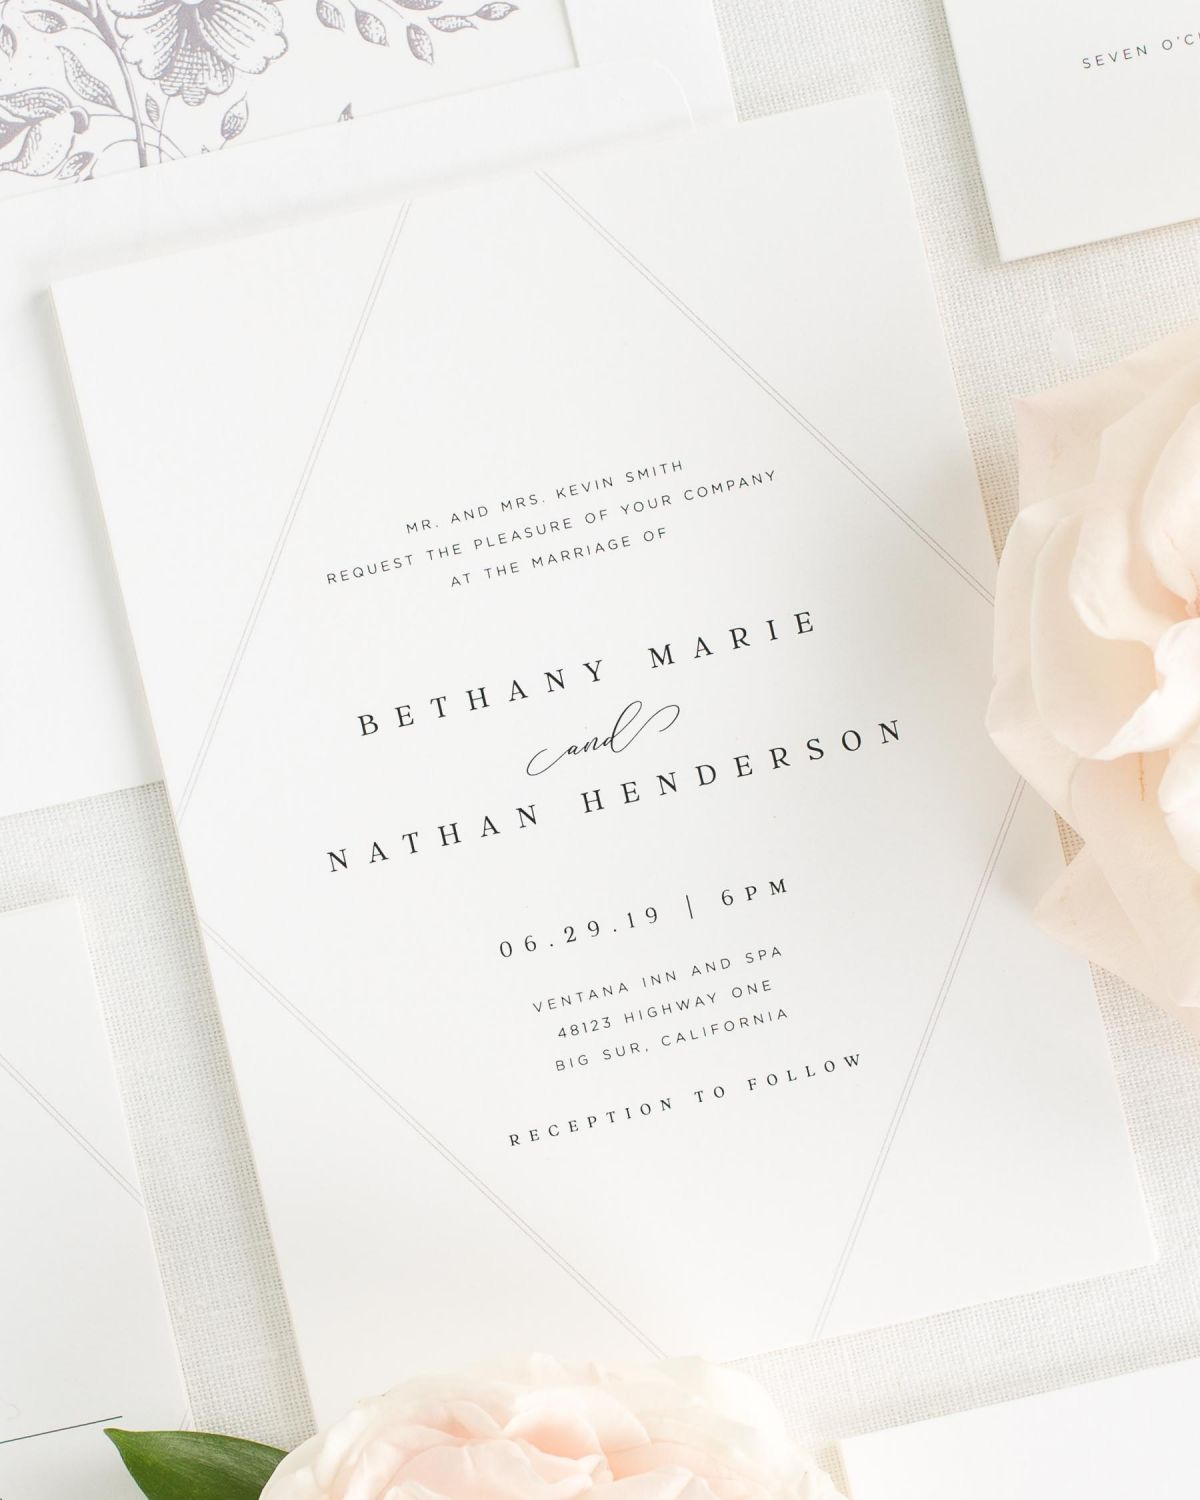 Bethany wedding invitations wedding invitations by shine wedding invitations stopboris